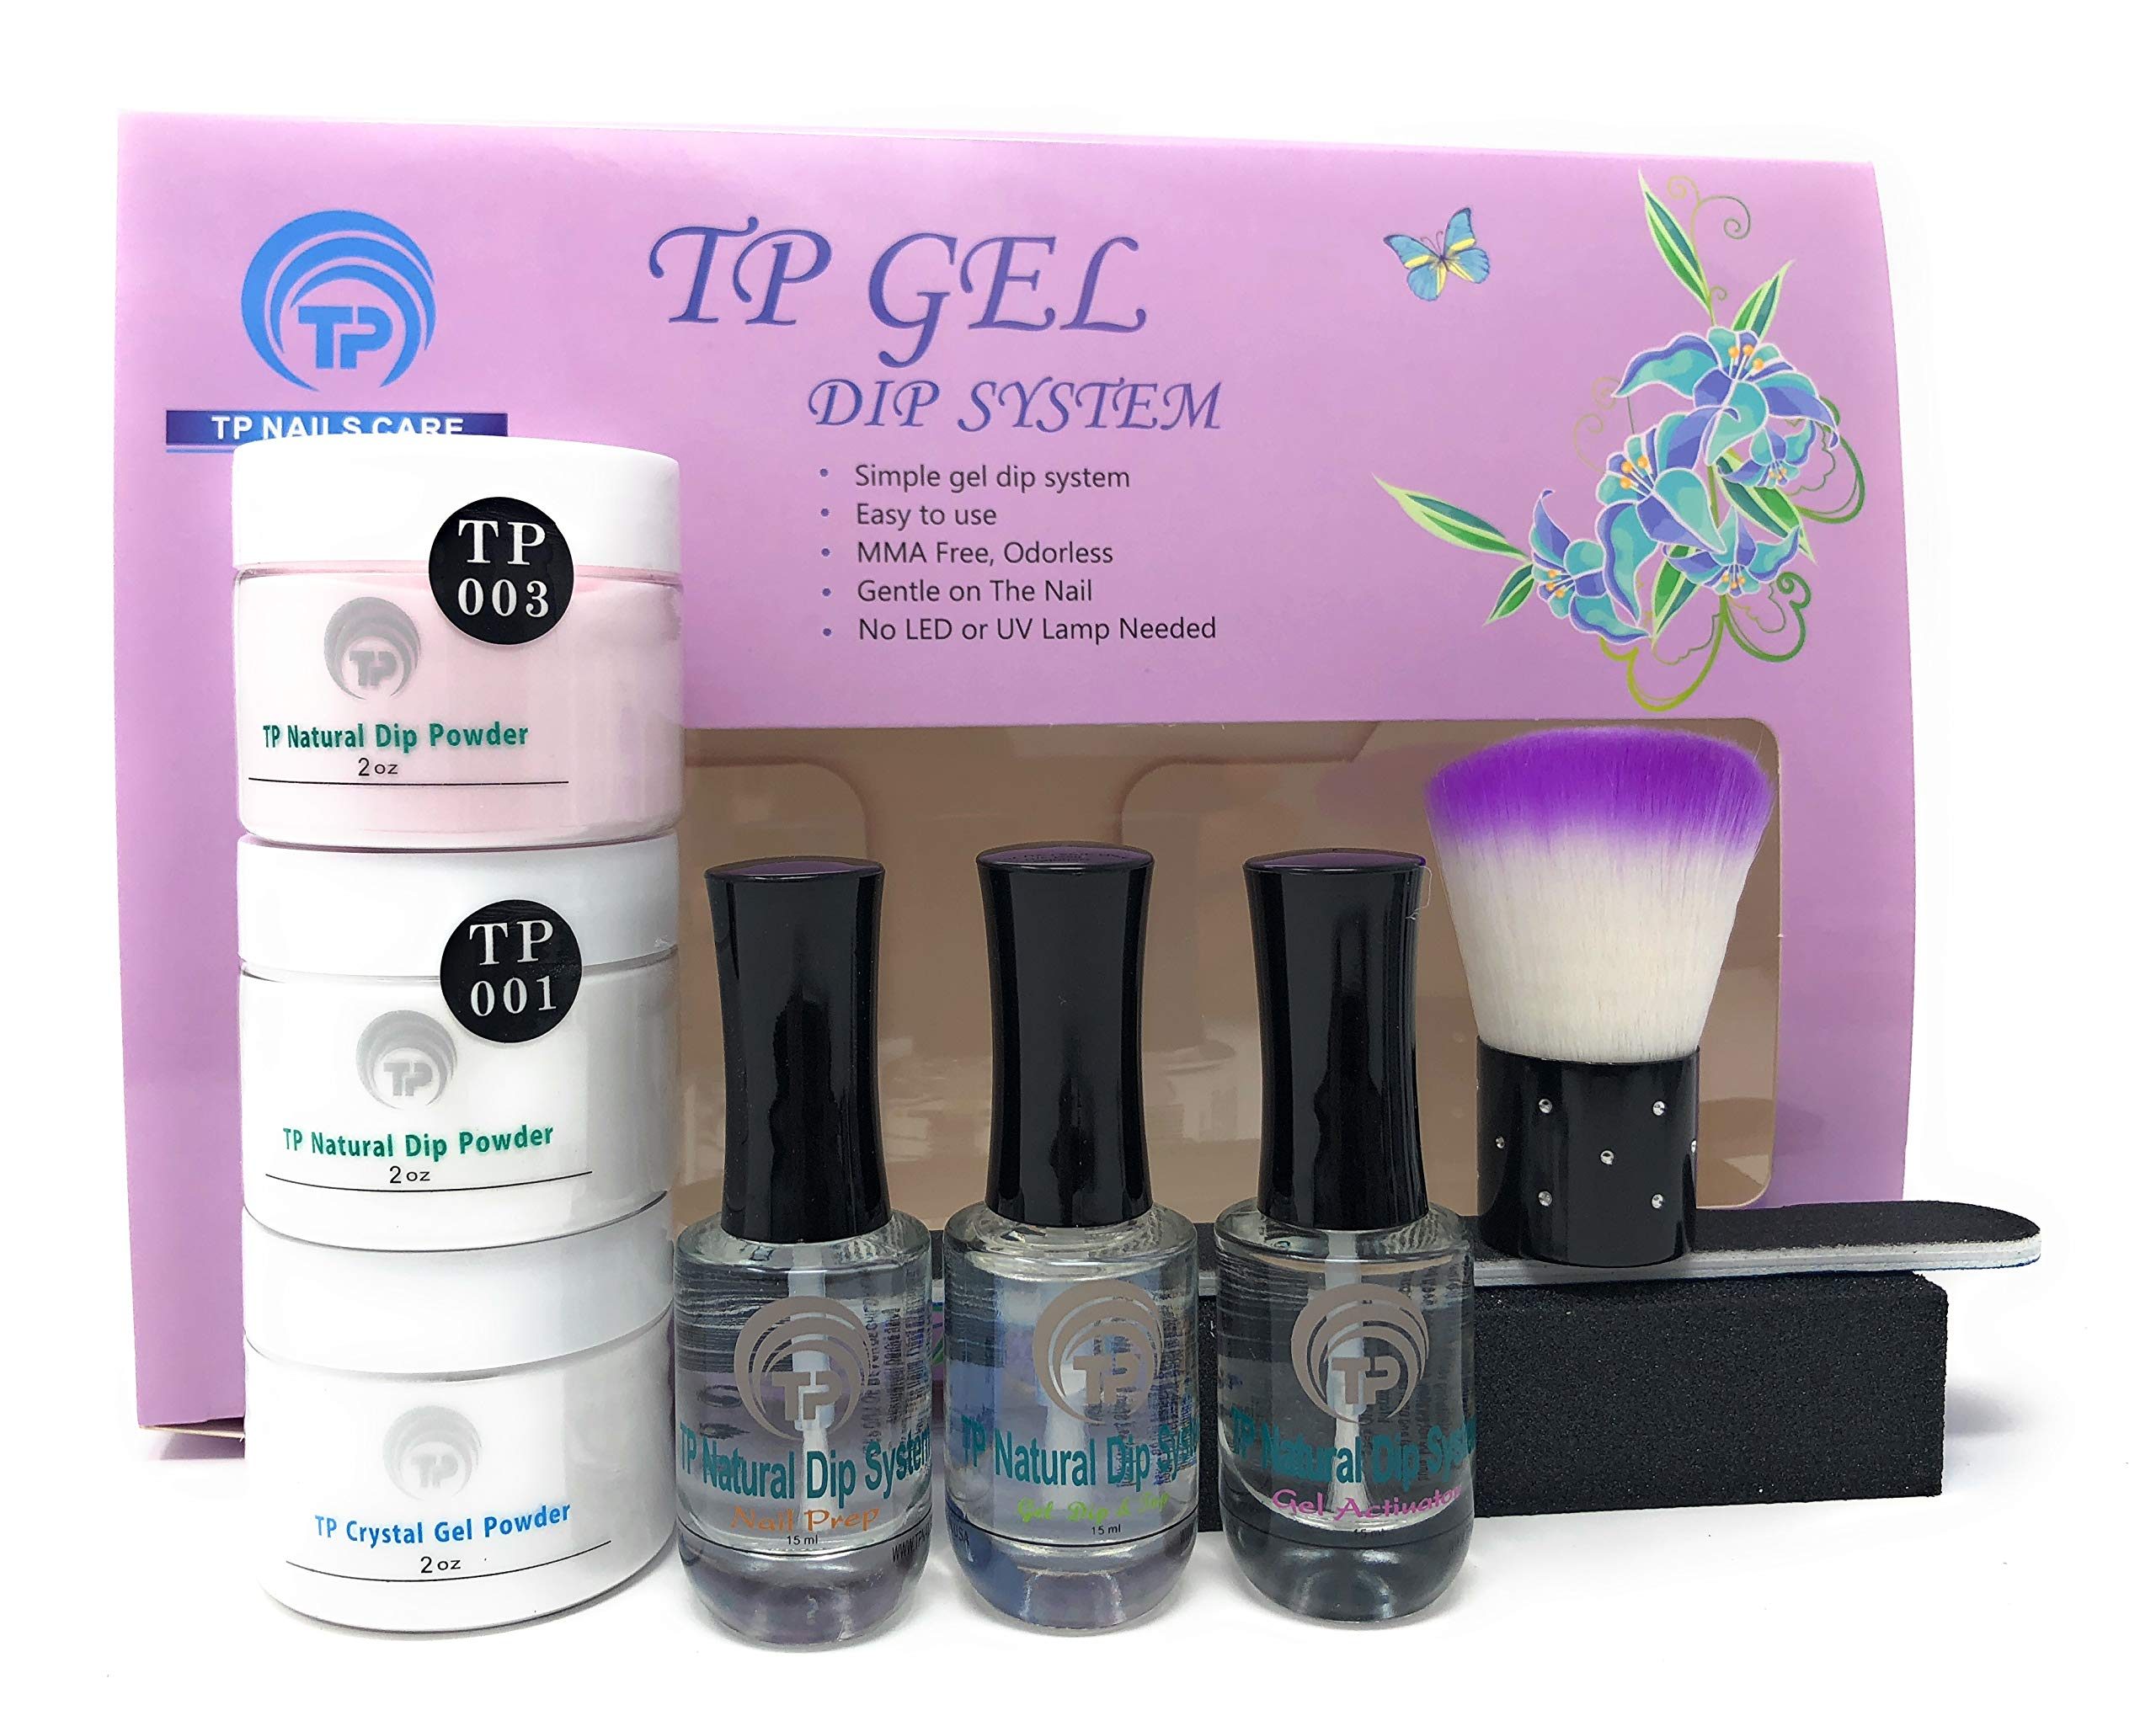 Nail Dipping Powder Kit For French Manicure 2 oz per jar. Easy to use dipping nail powder starter kit.